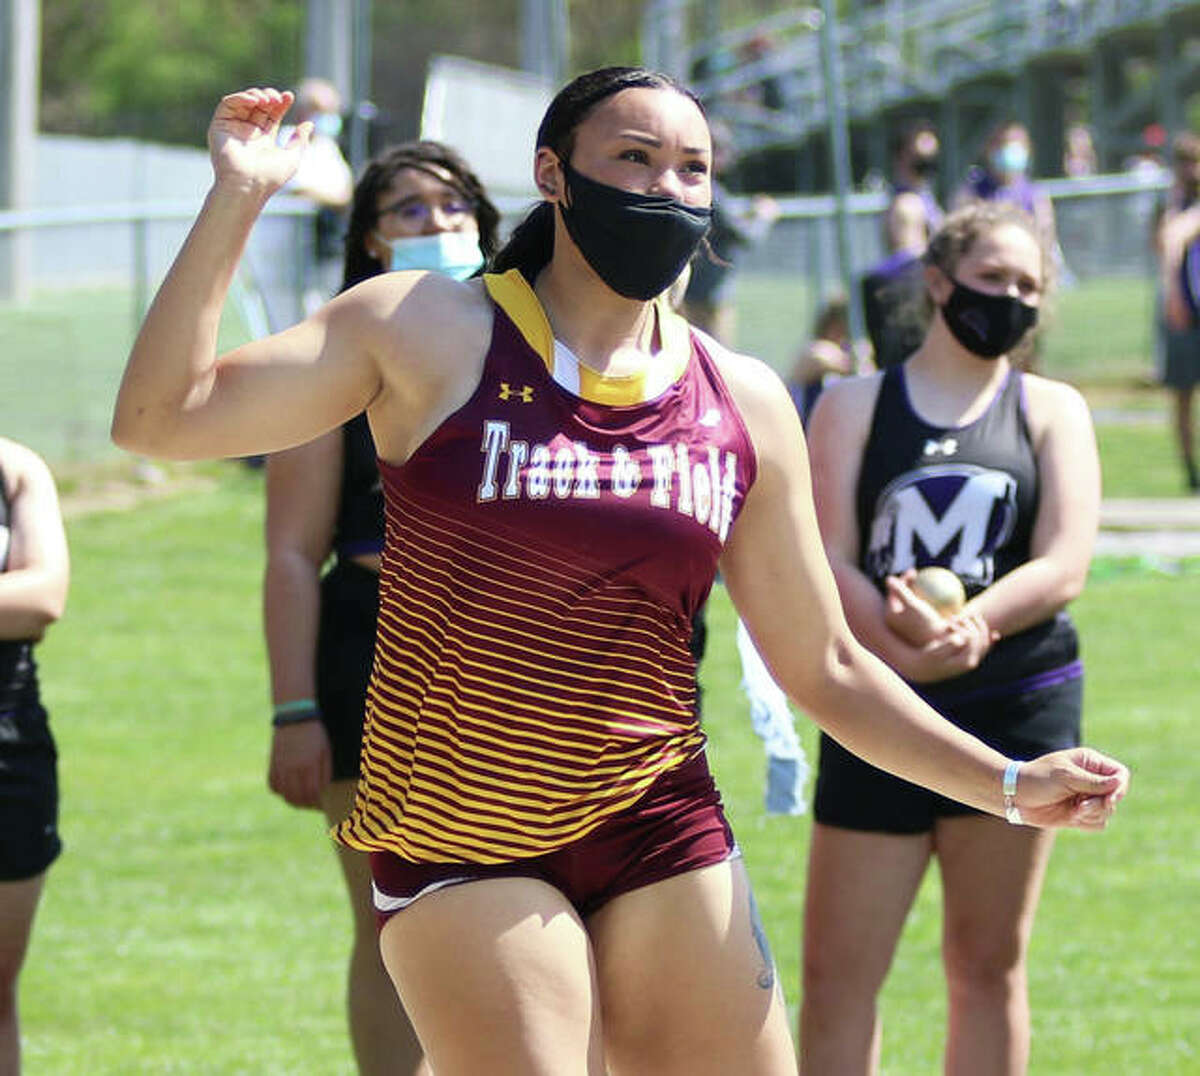 EA-WR's Jayden Ulrich, shown watching her throw of 50-2 in the shot put at the Triad Invite on May 5, exceeded that PR on Friday at the Collinsville Invite with a state-record toss of 51 feet, 11 inches. Ulrich broke a 13-year-old state record, regardless of class, by more than 10 inches.